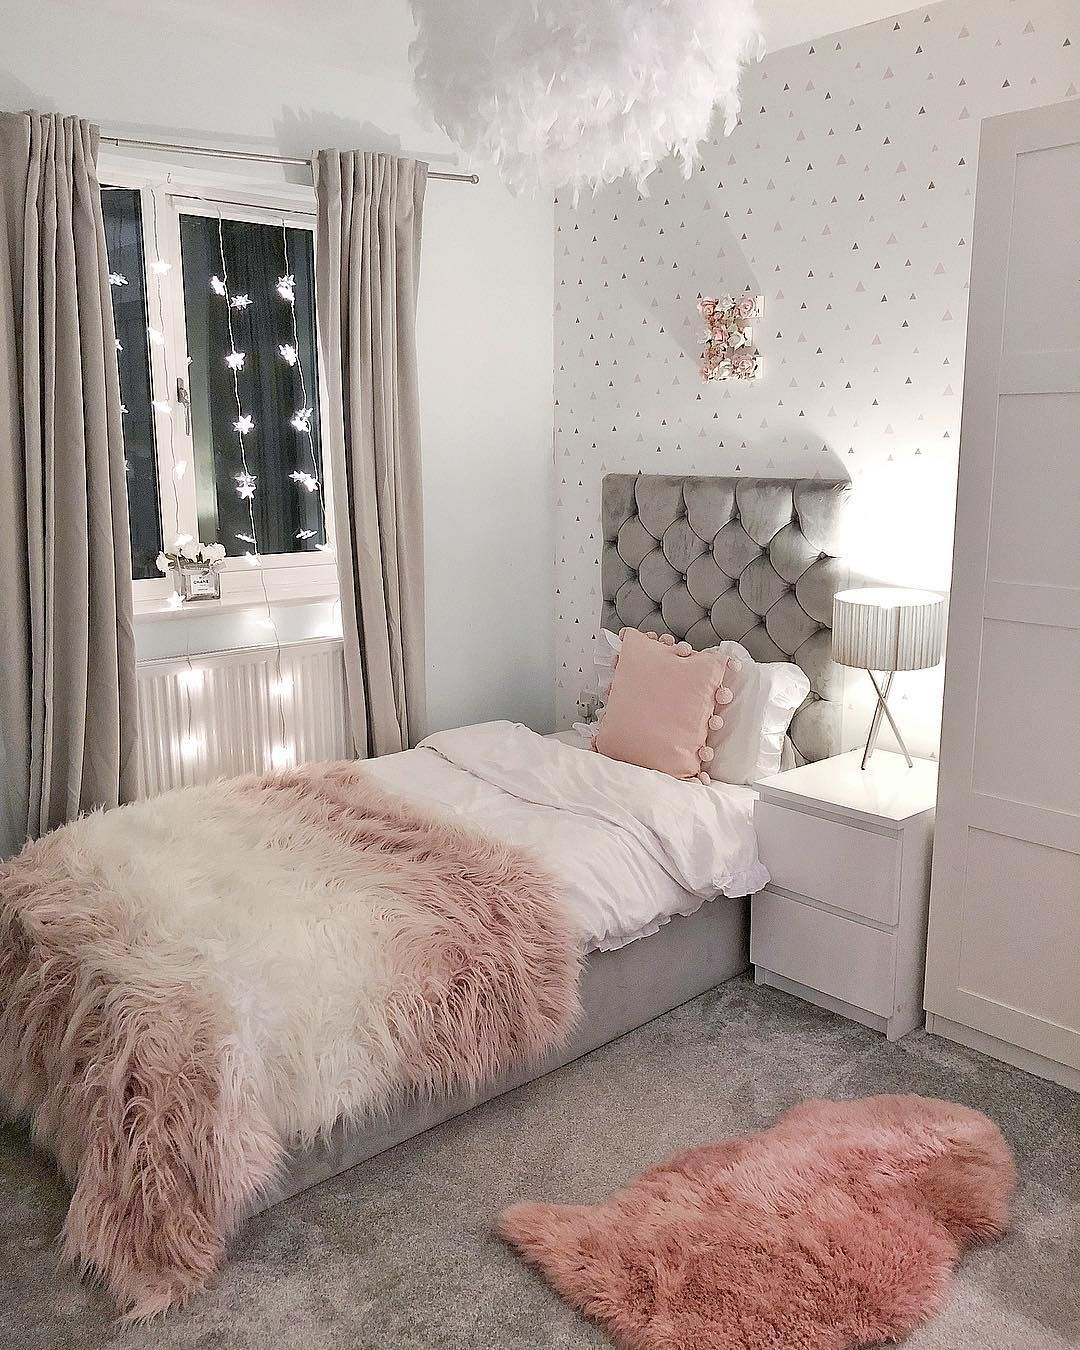 Luckyplot13 Frankie On Instagram A Room For 2 Sisters I Ve Had A Lovely Afternoon Out And When I Bedroom Decor Bedroom Interior Room Inspiration Bedroom